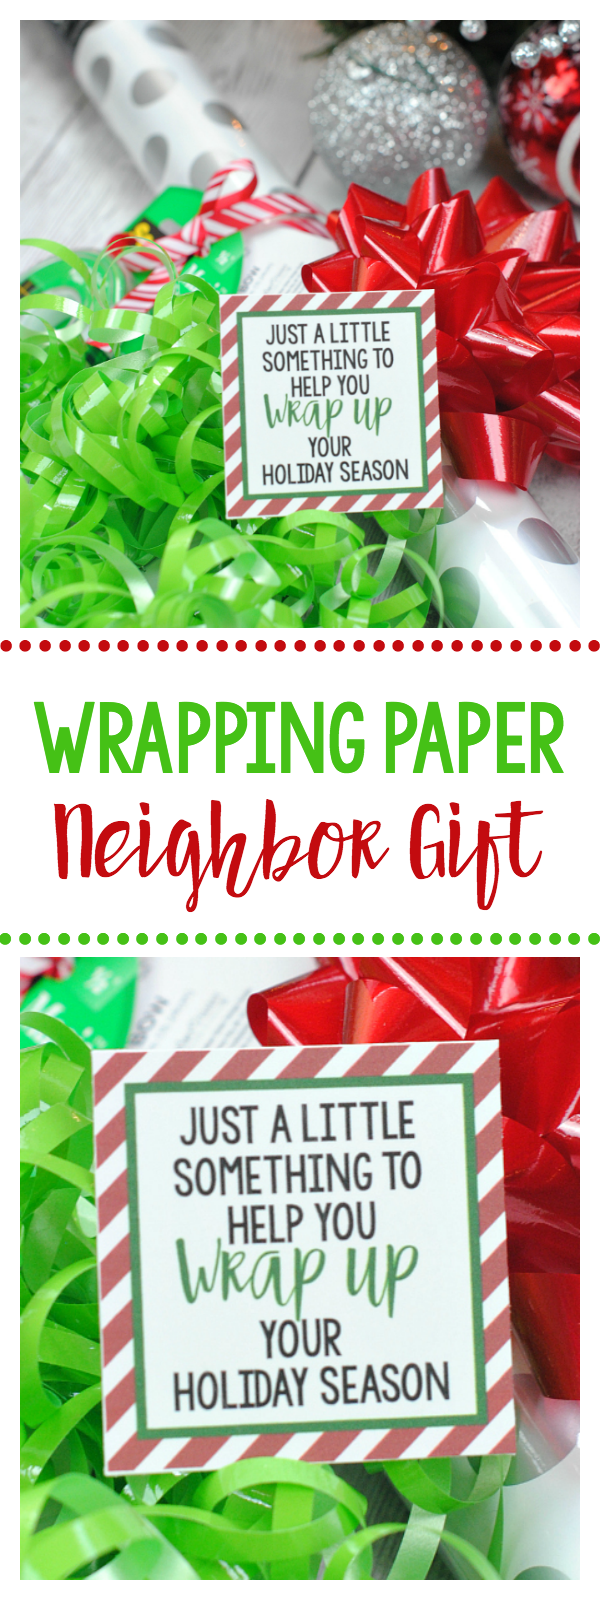 Wrapping Paper Gift for Christmas